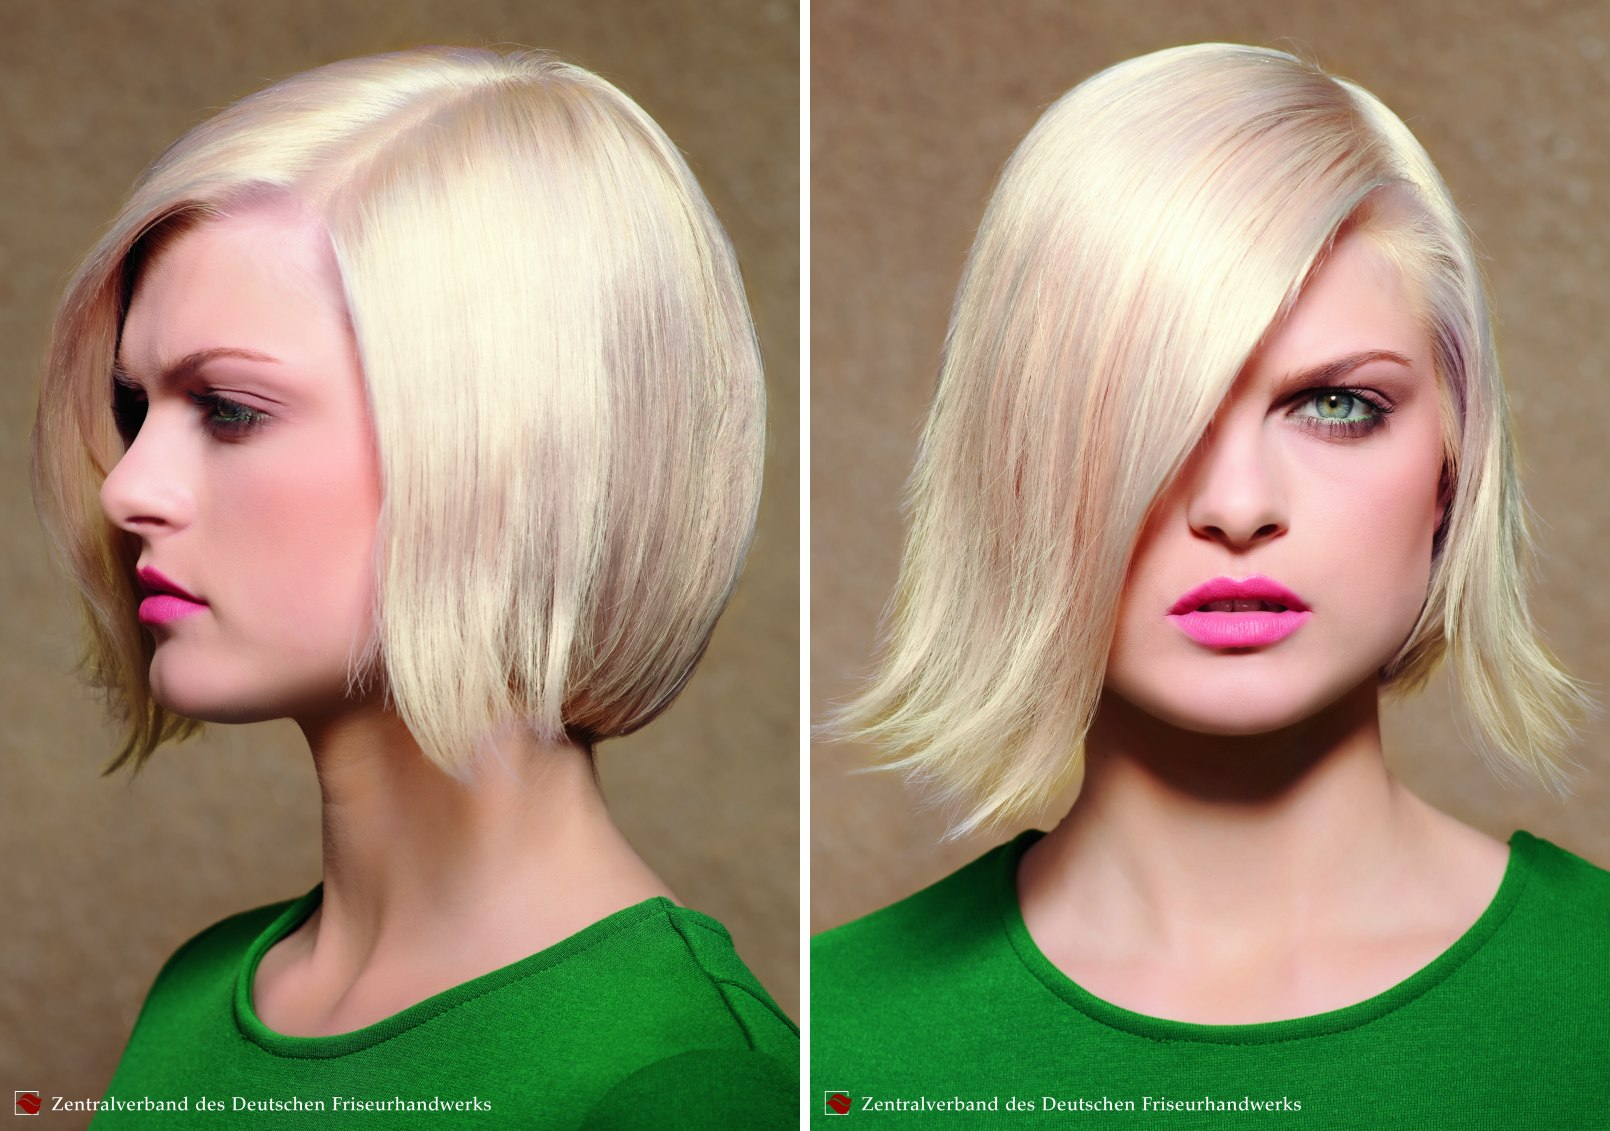 Rounded chin length bob hairstyle with the front curved